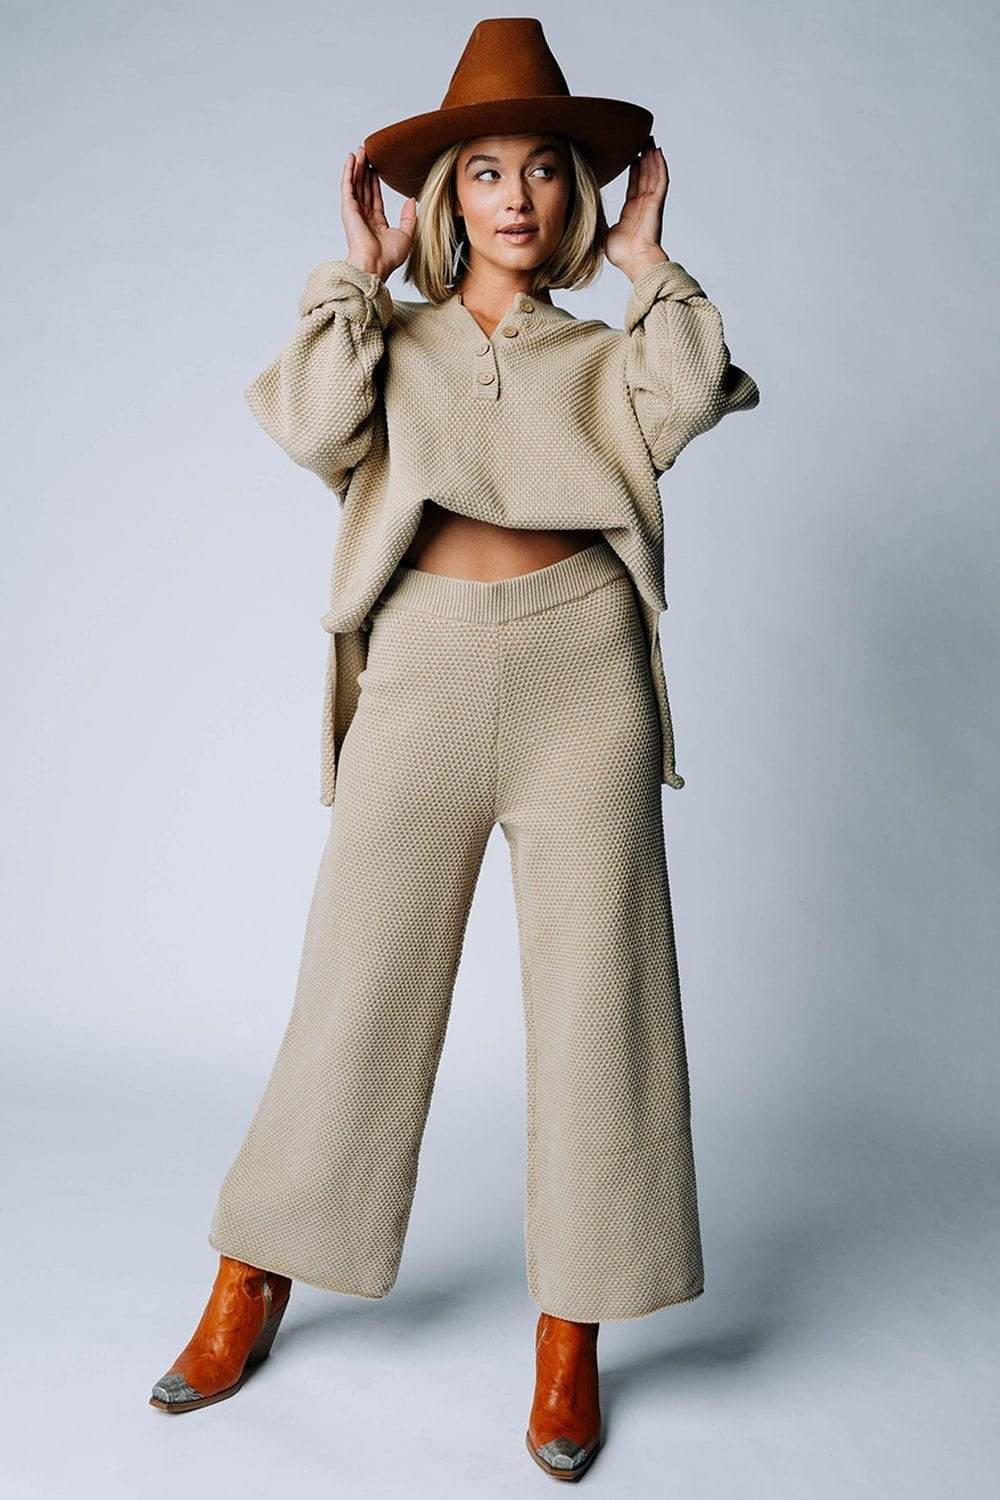 The Frankie Set in Sand-Bottom-n/a-S-Clad & Cloth